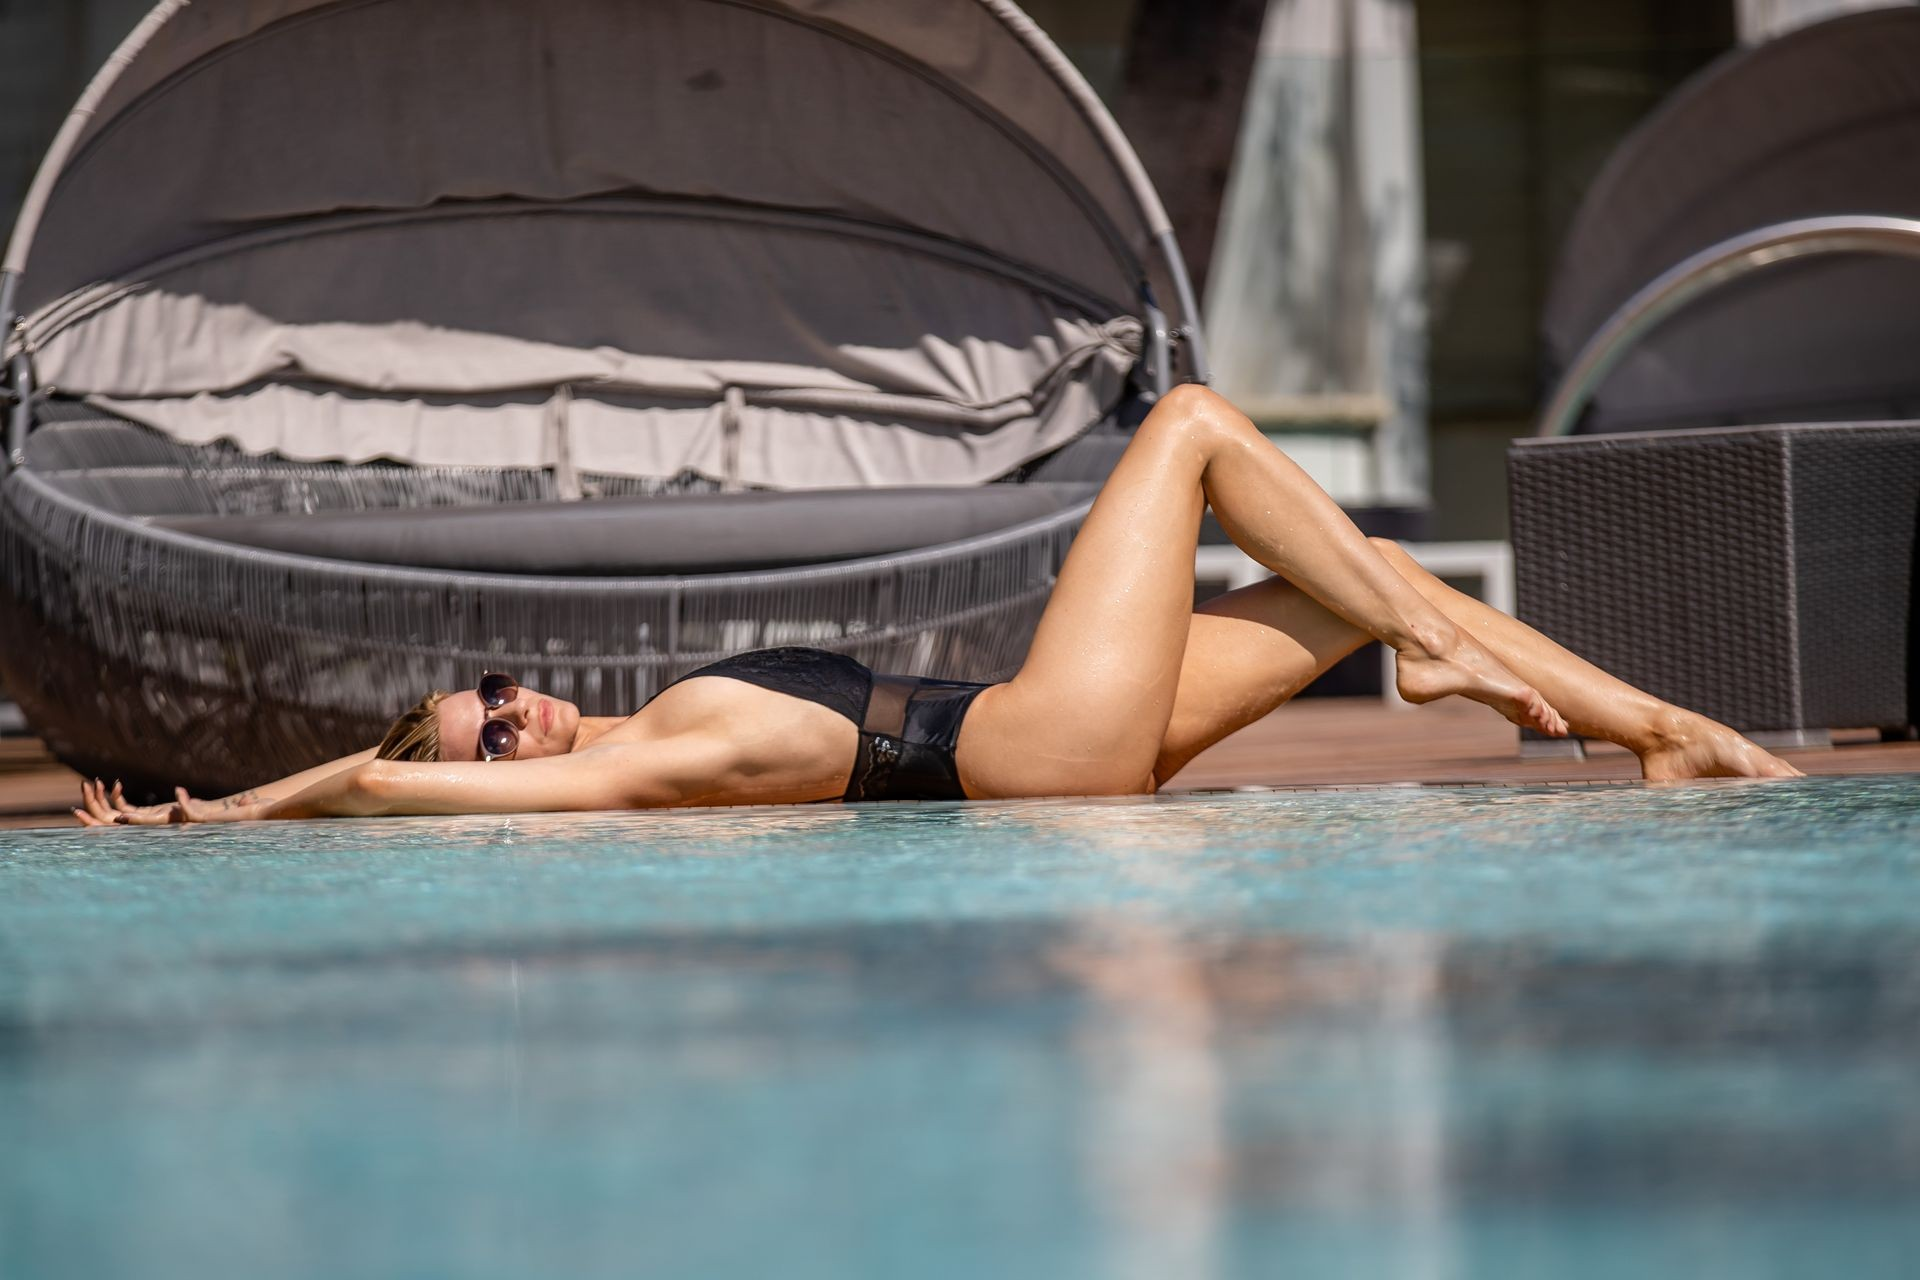 Rachel McCord Leaked Pool Photos, Long Legs